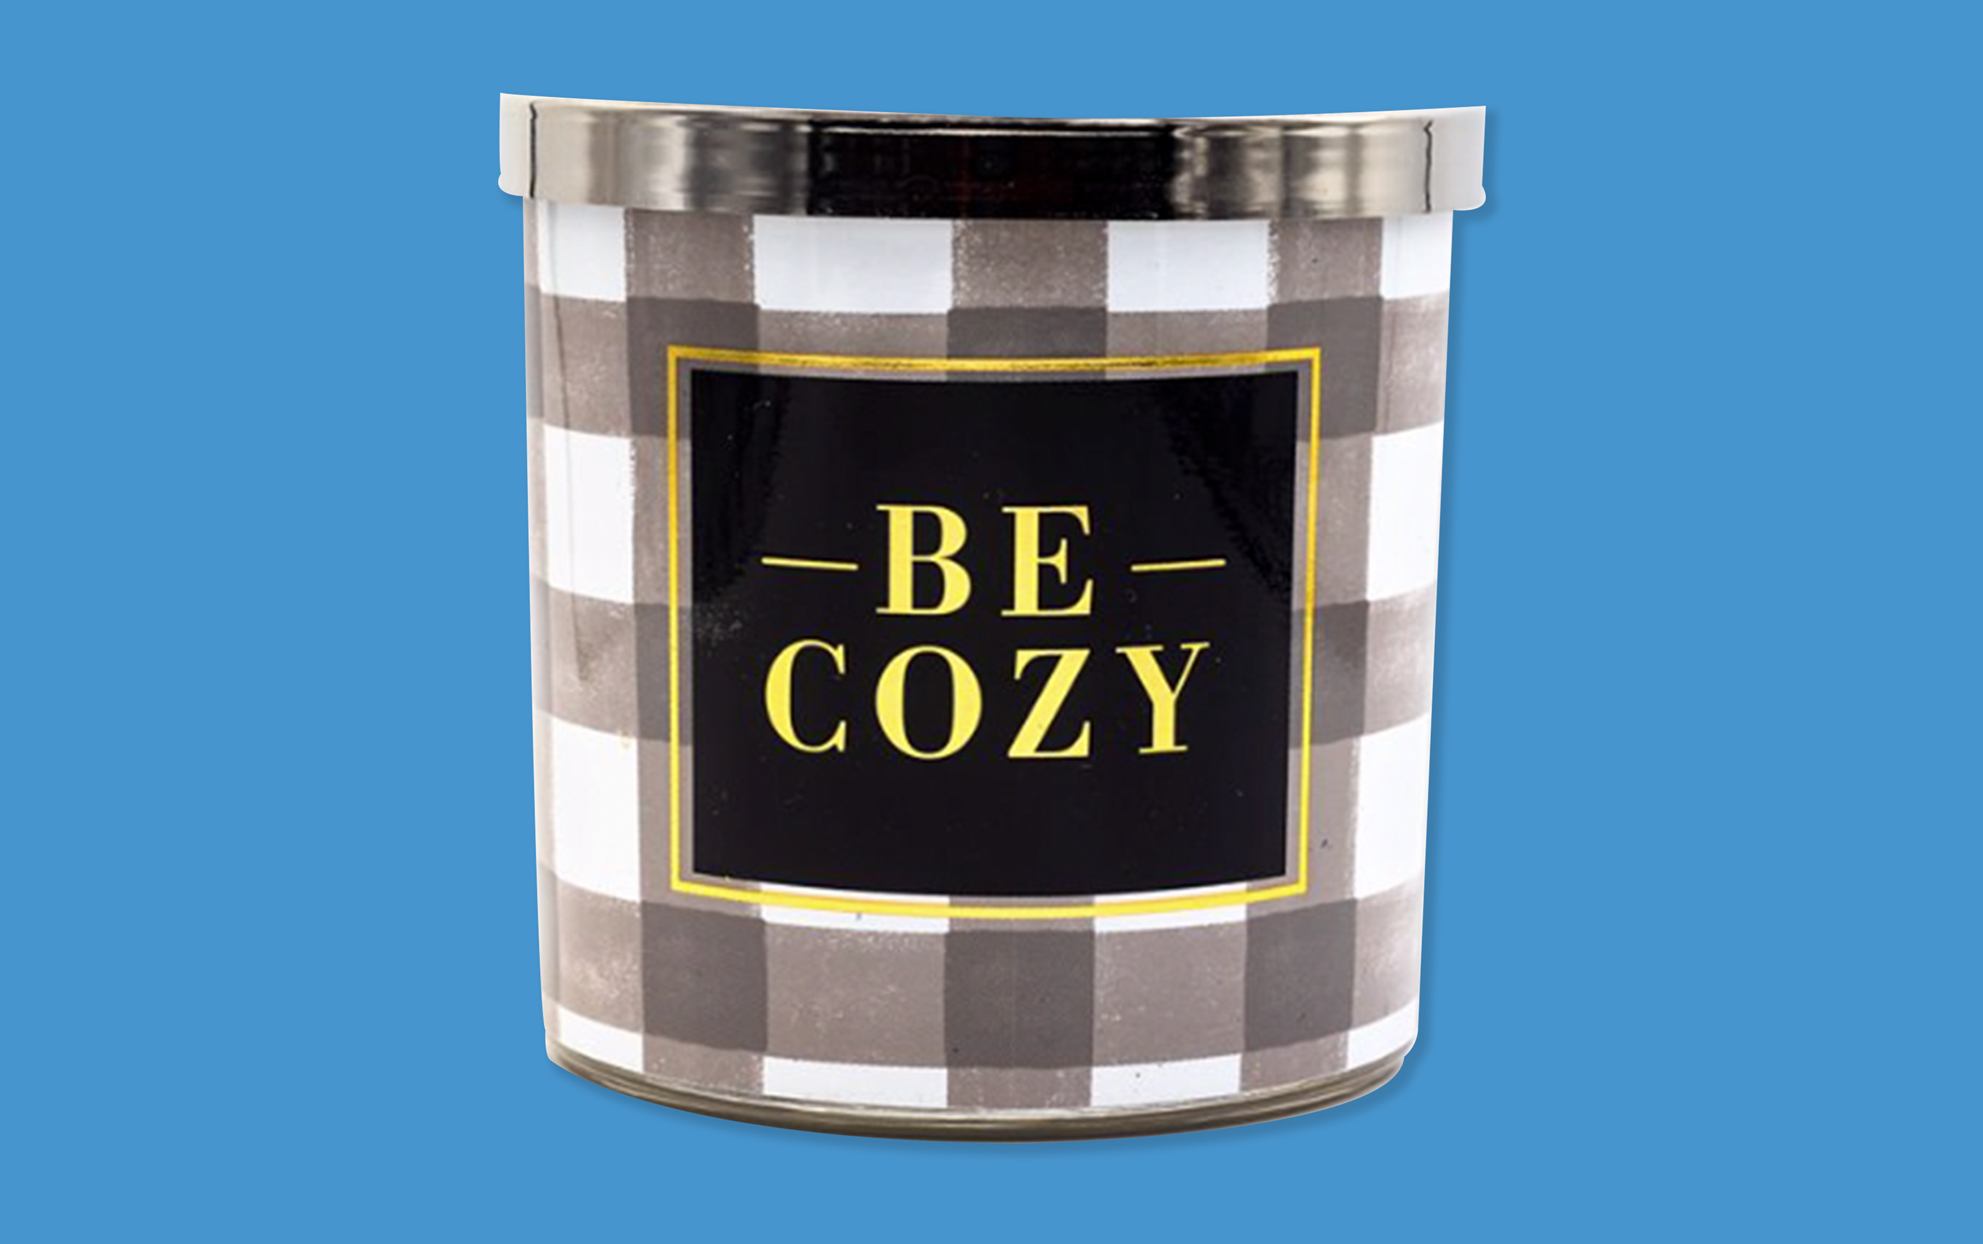 Be Cozy black and white plaid candle on a blue background